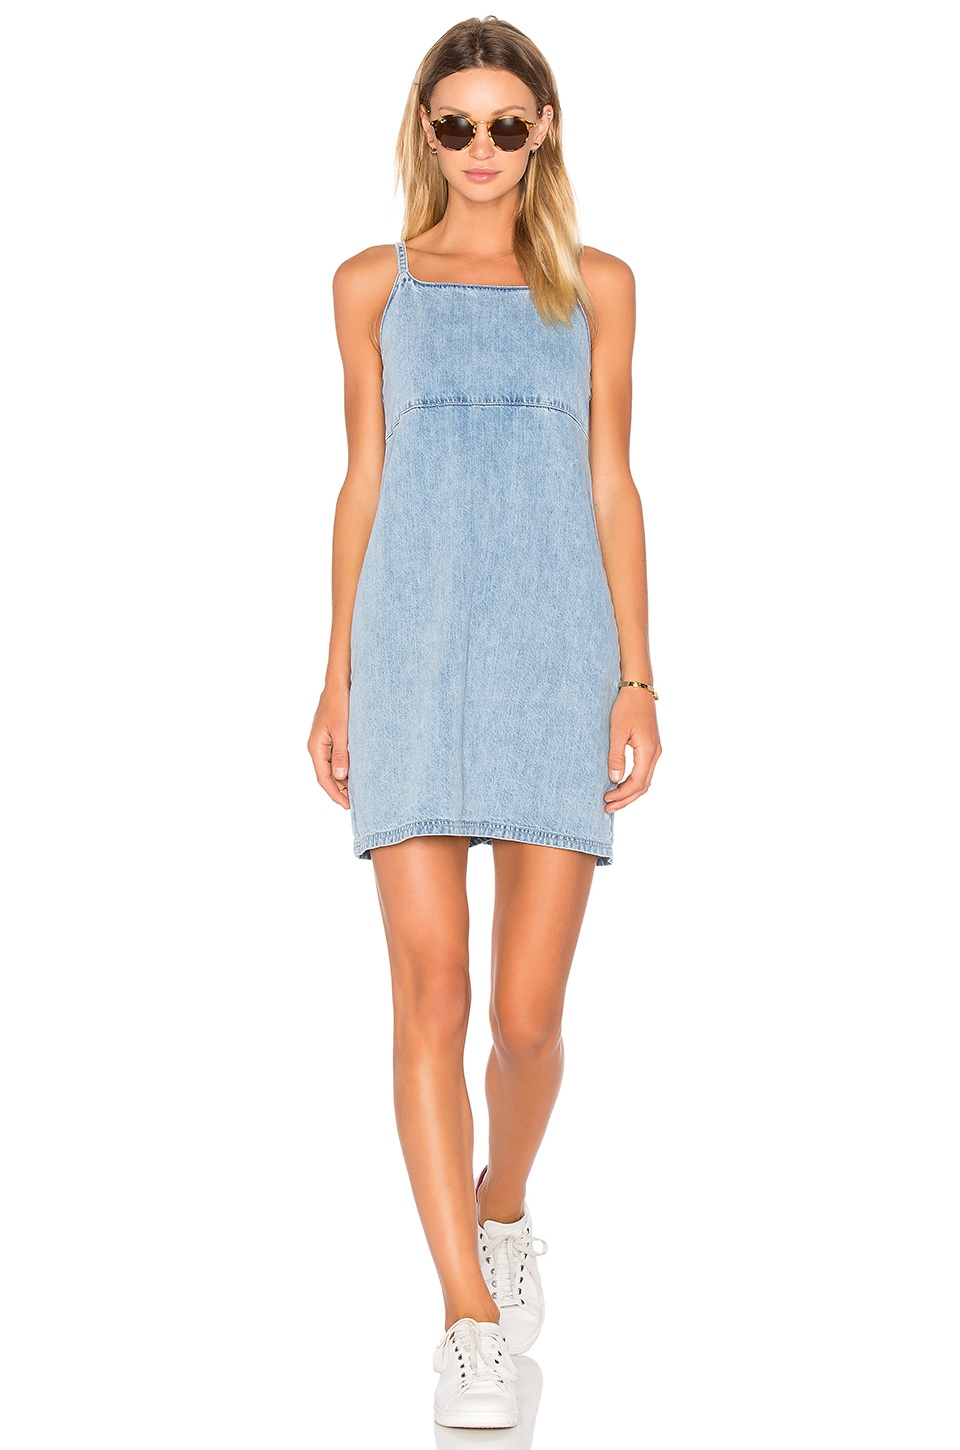 Assembly Label Denmark Dress in Denim